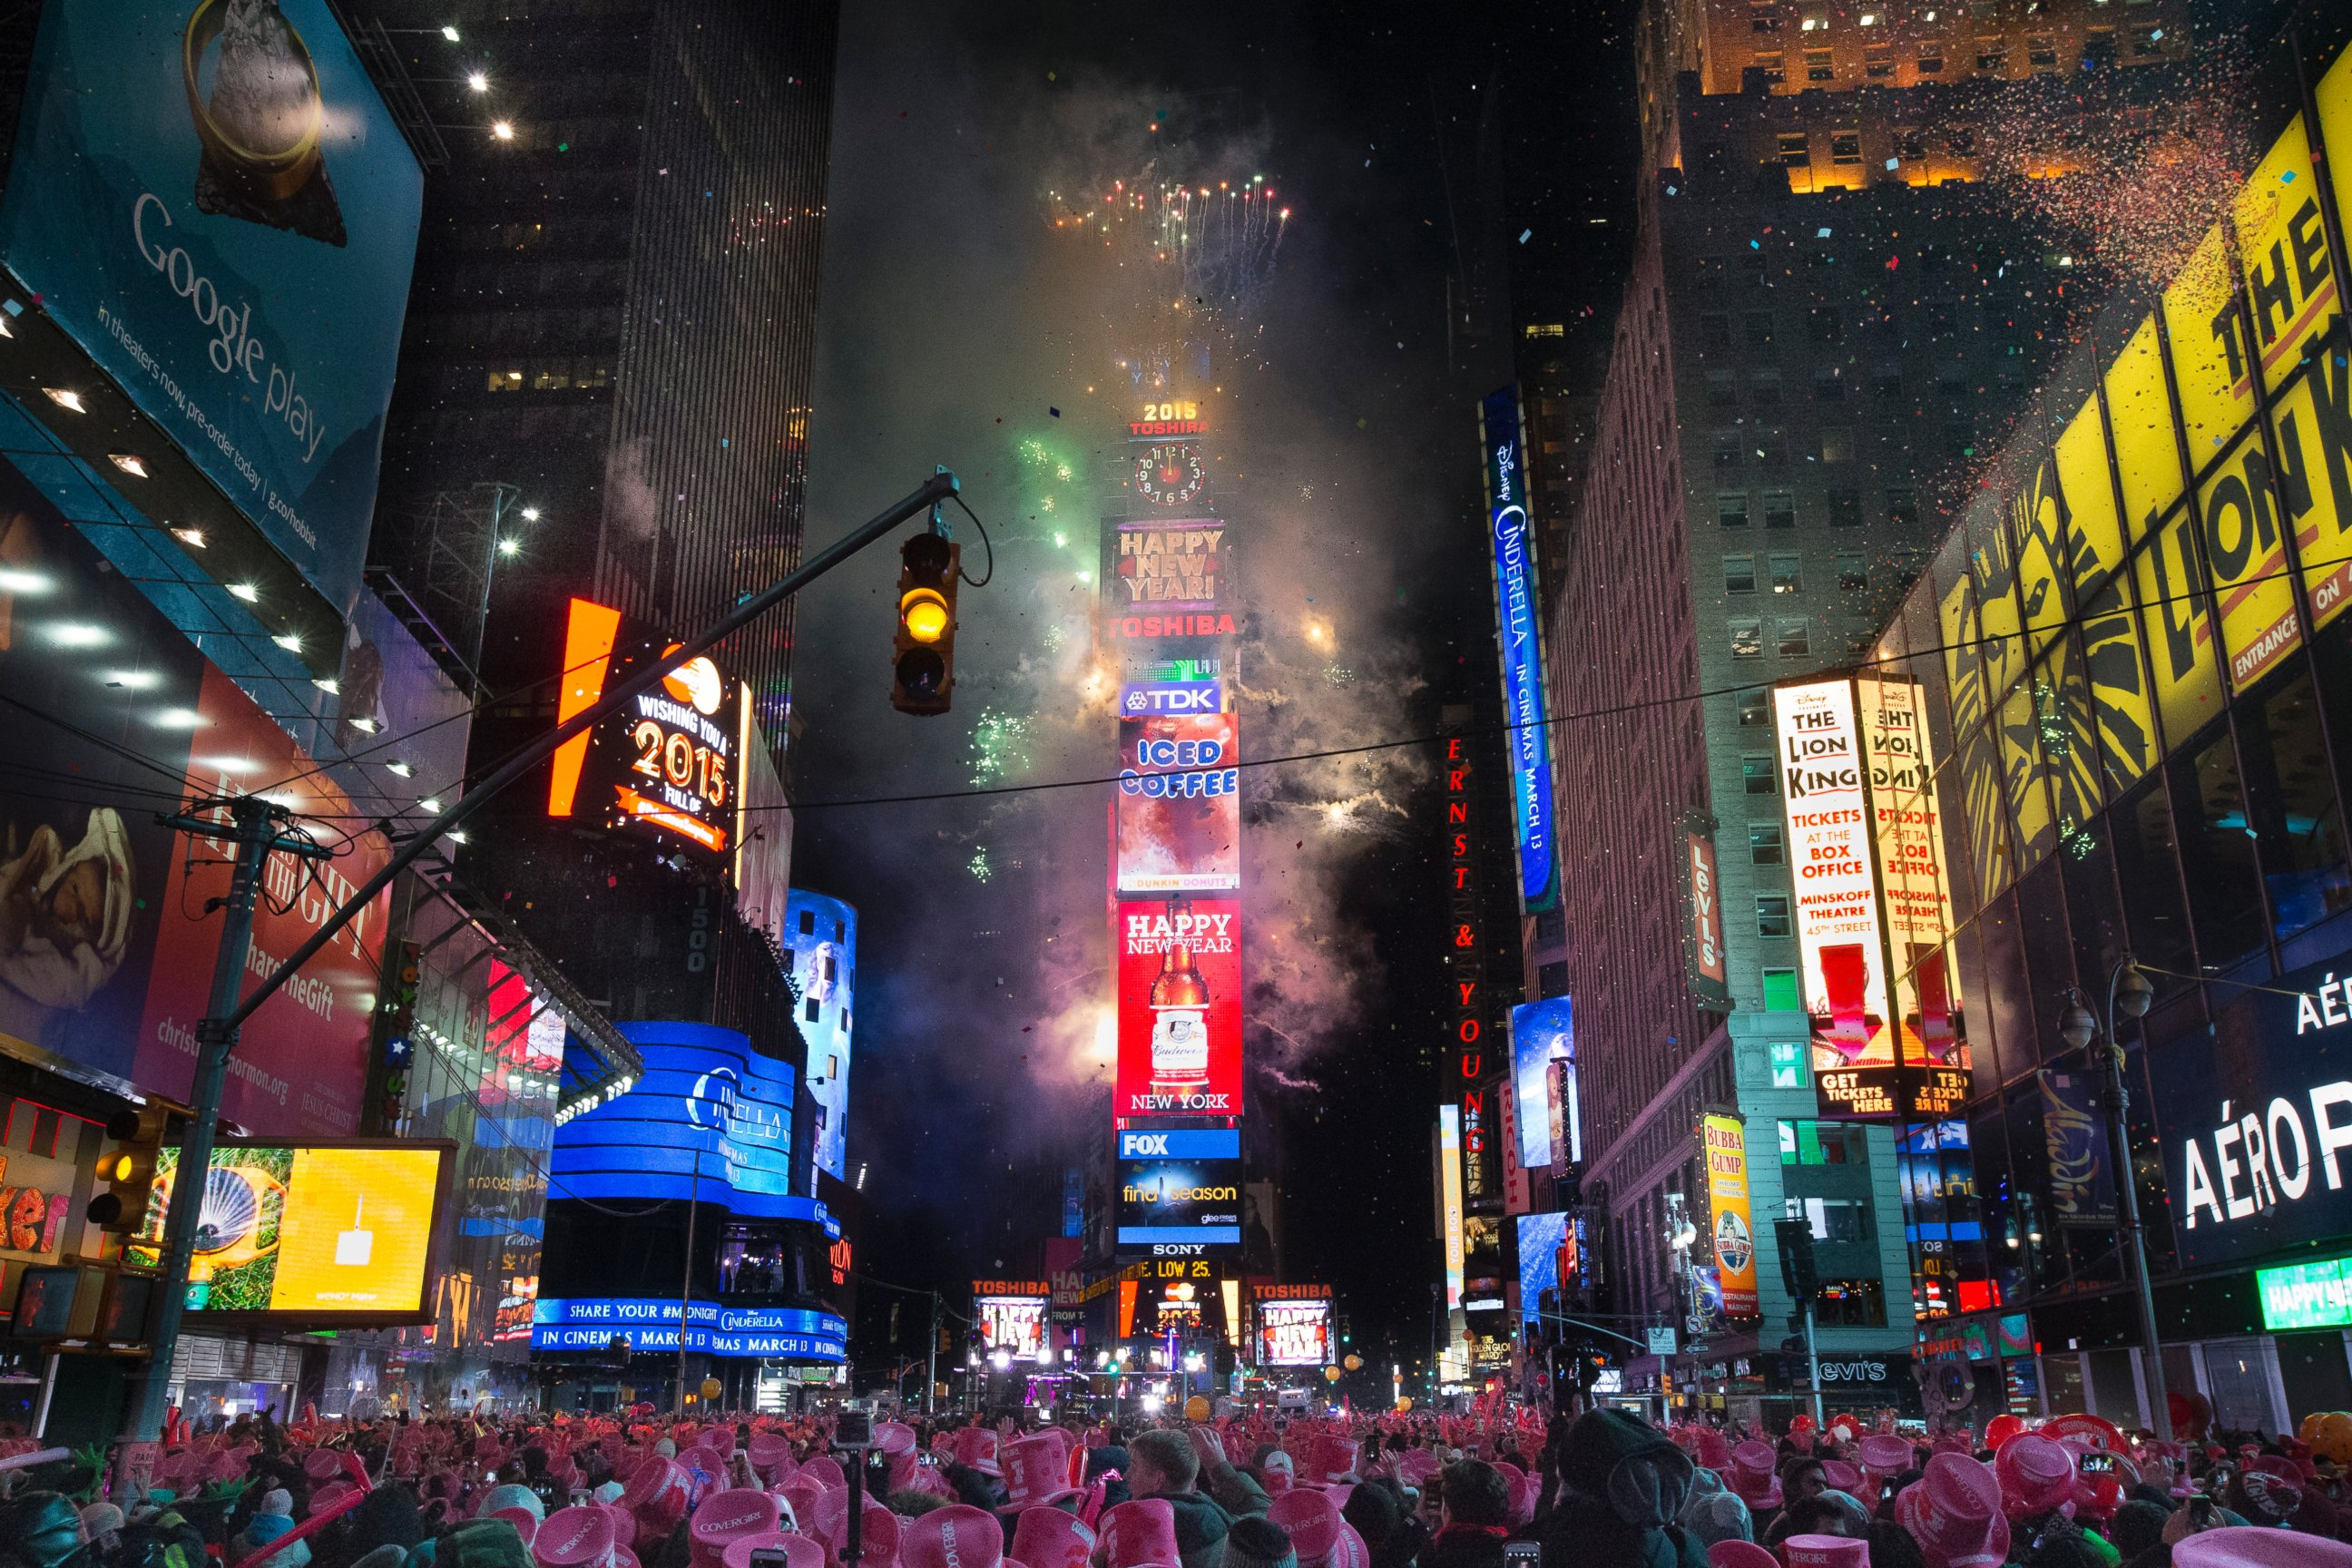 New Years Eve 2014 New York